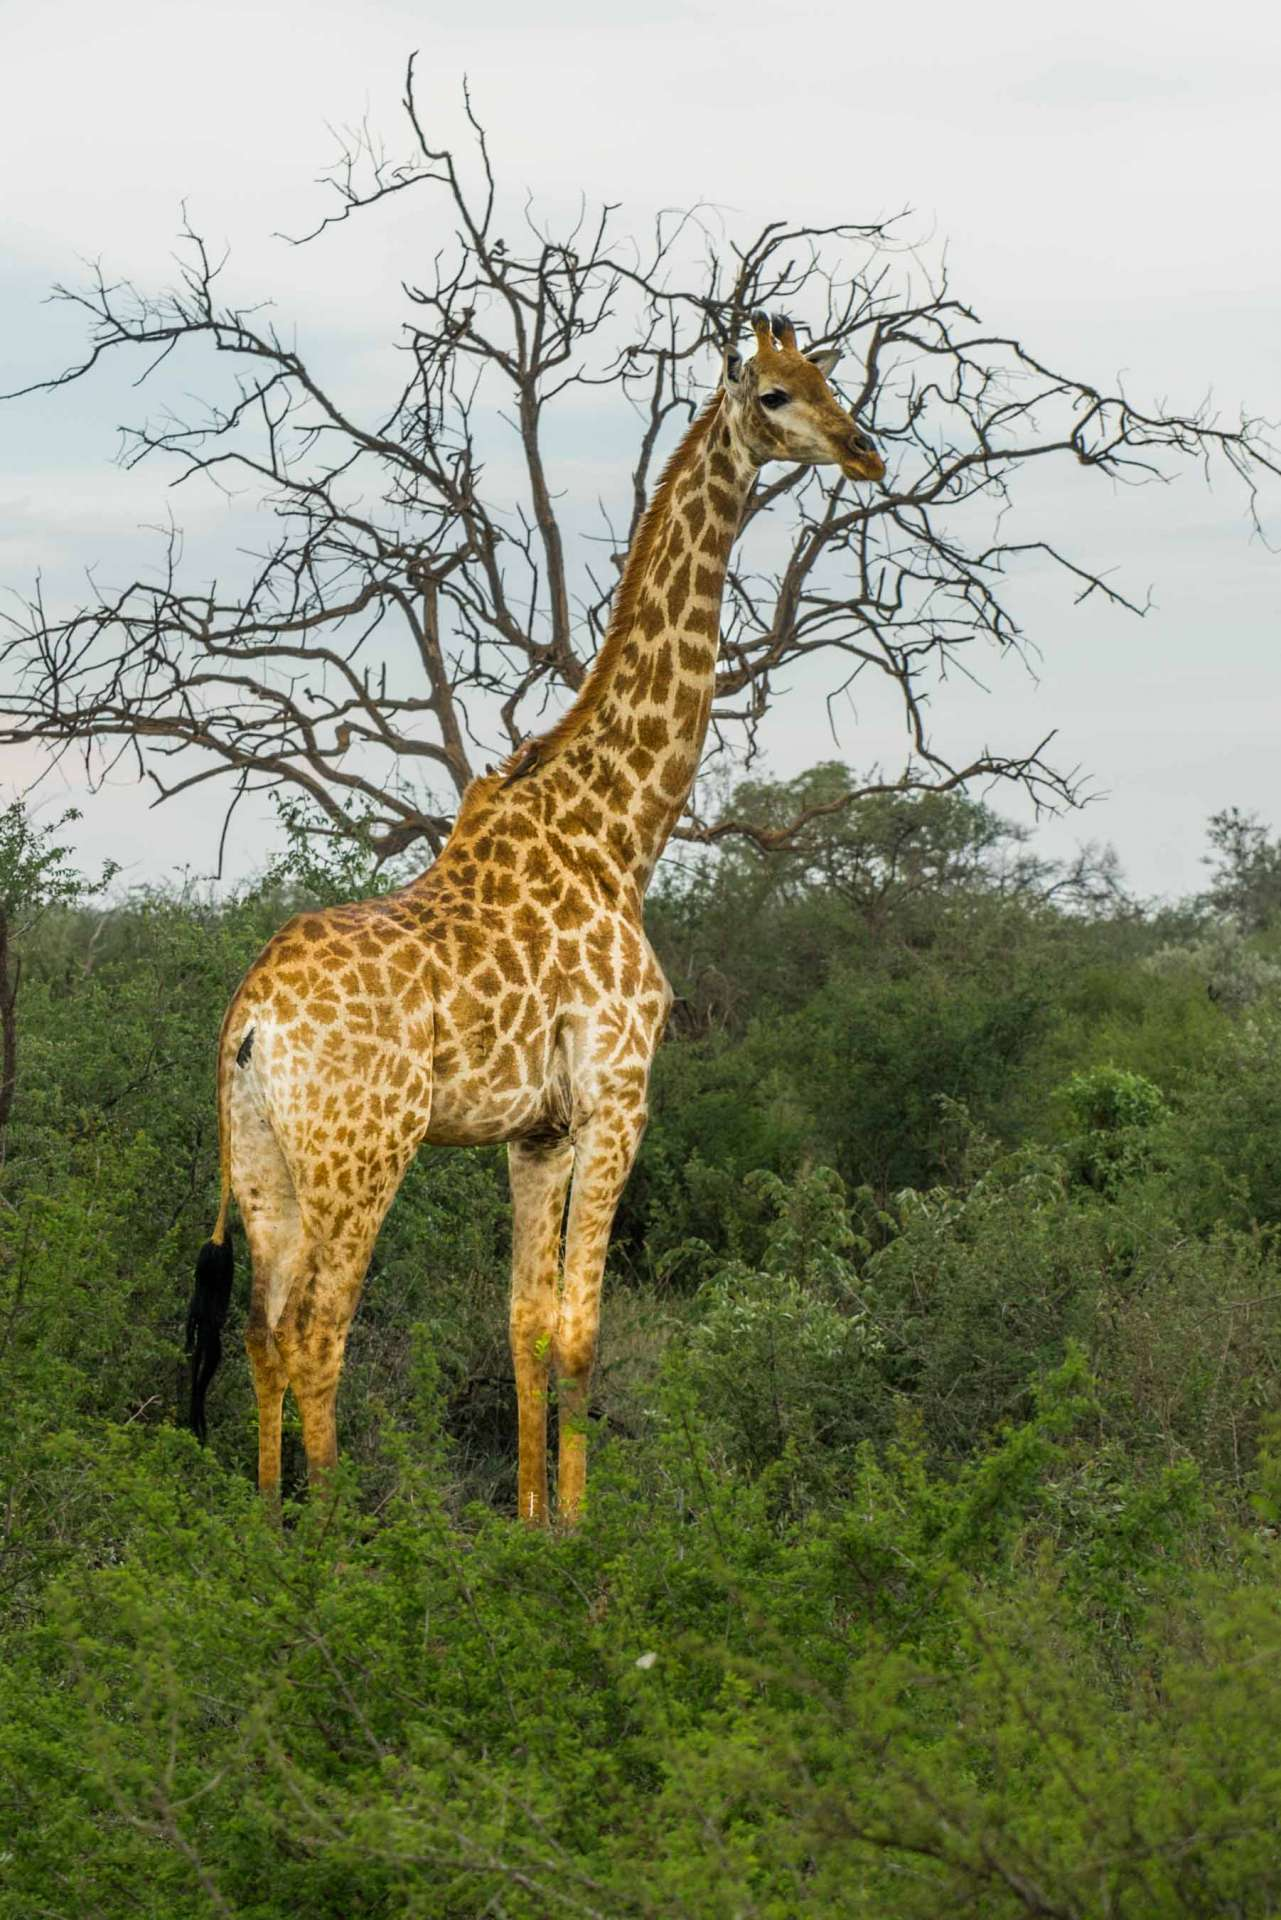 south africa madikwe safari pescart giraffe 4